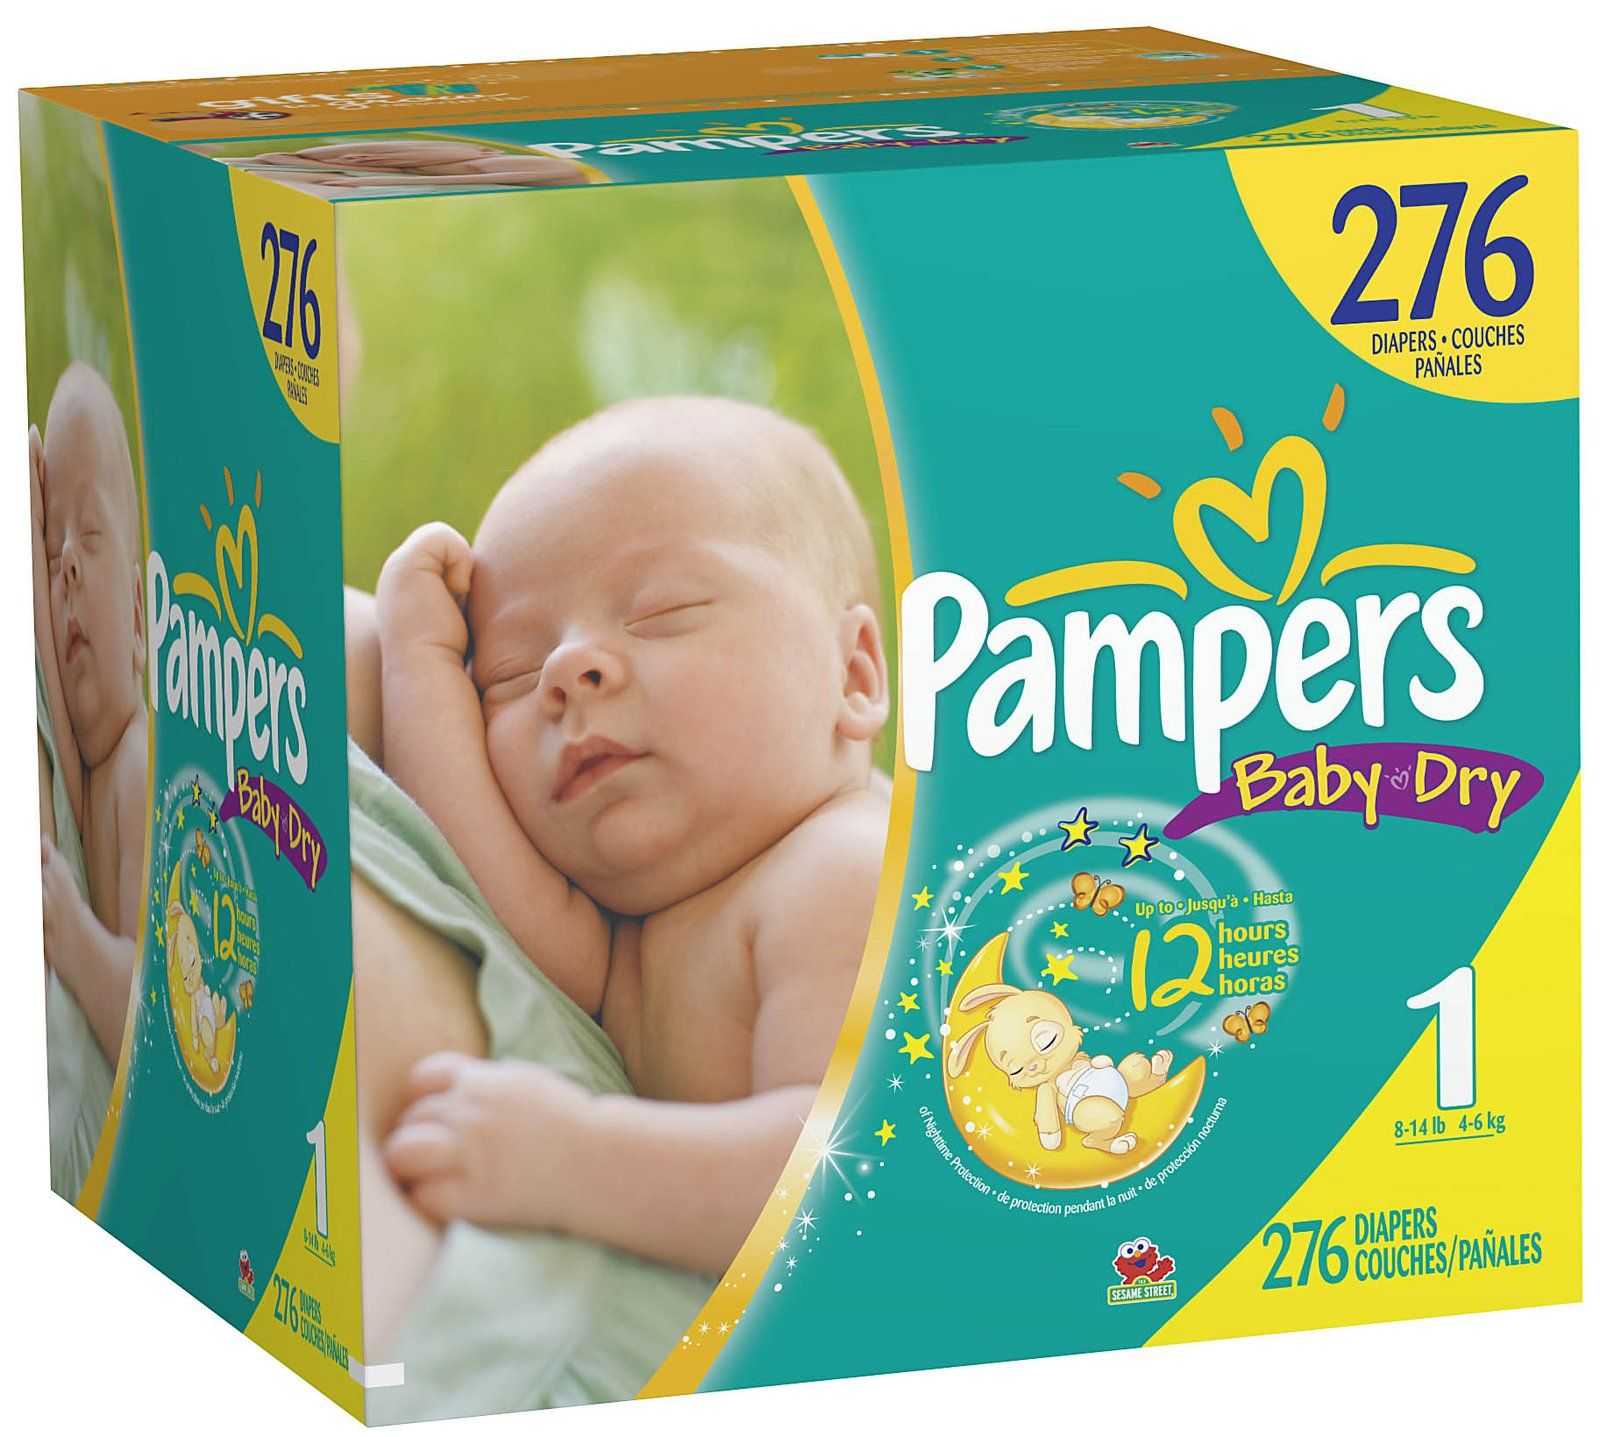 Coupons for baby toddlers pull ups huggies pampers johnsons coupons for baby toddlers pull ups huggies pampers johnsons baby products nvjuhfo Image collections